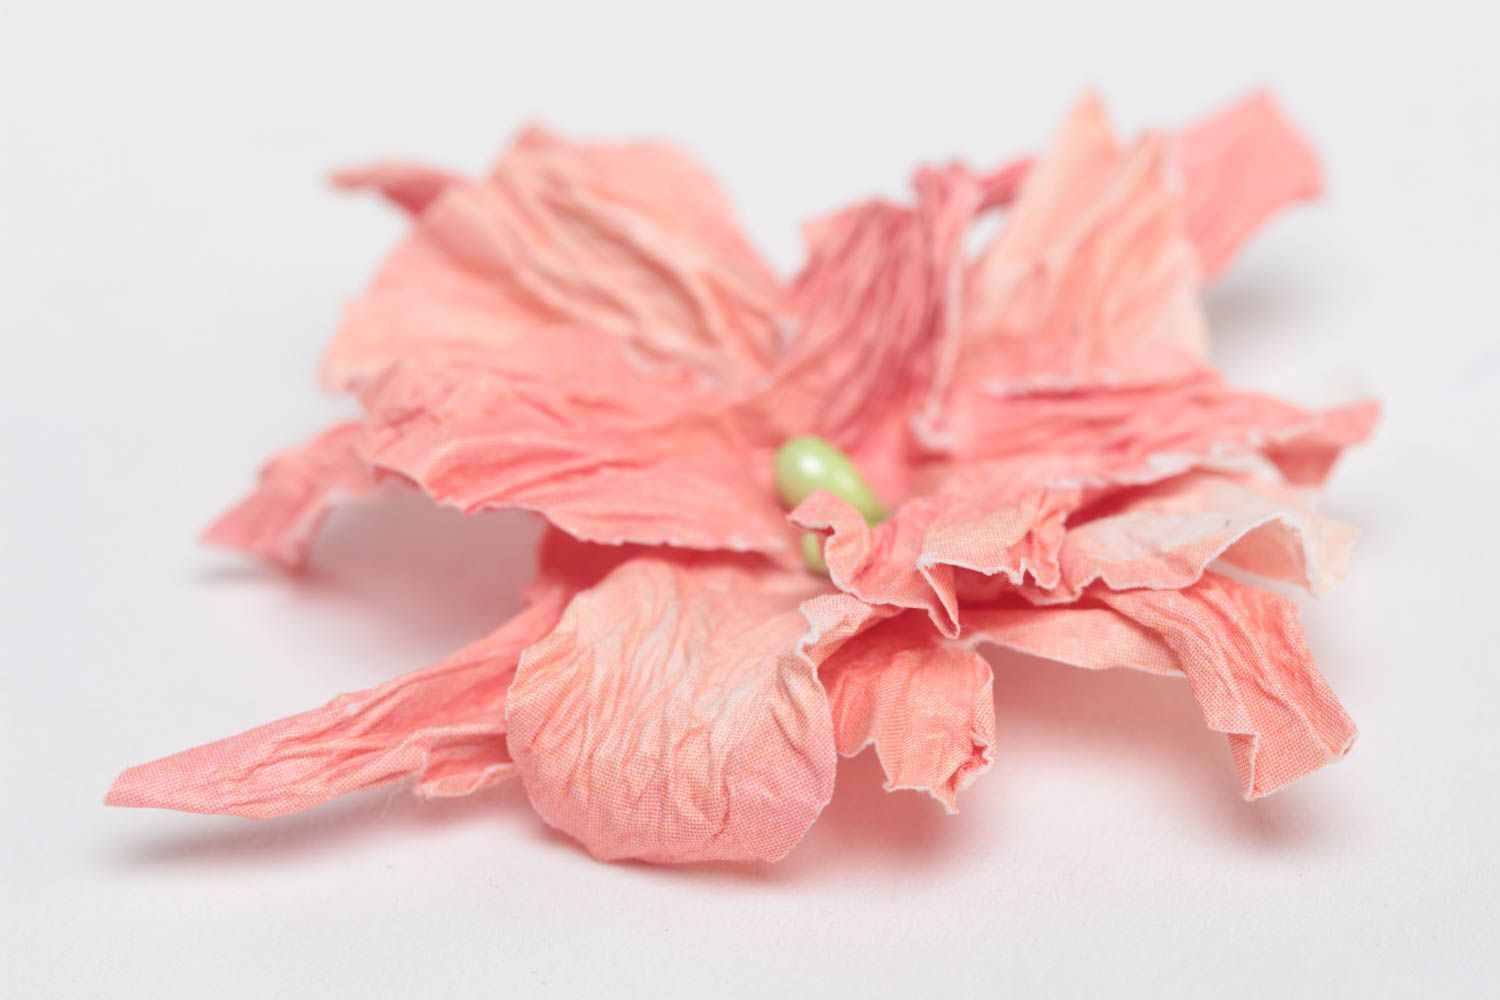 Handmade Pink Artificial Paper Flower Painted With Watercolors Scrapbooking